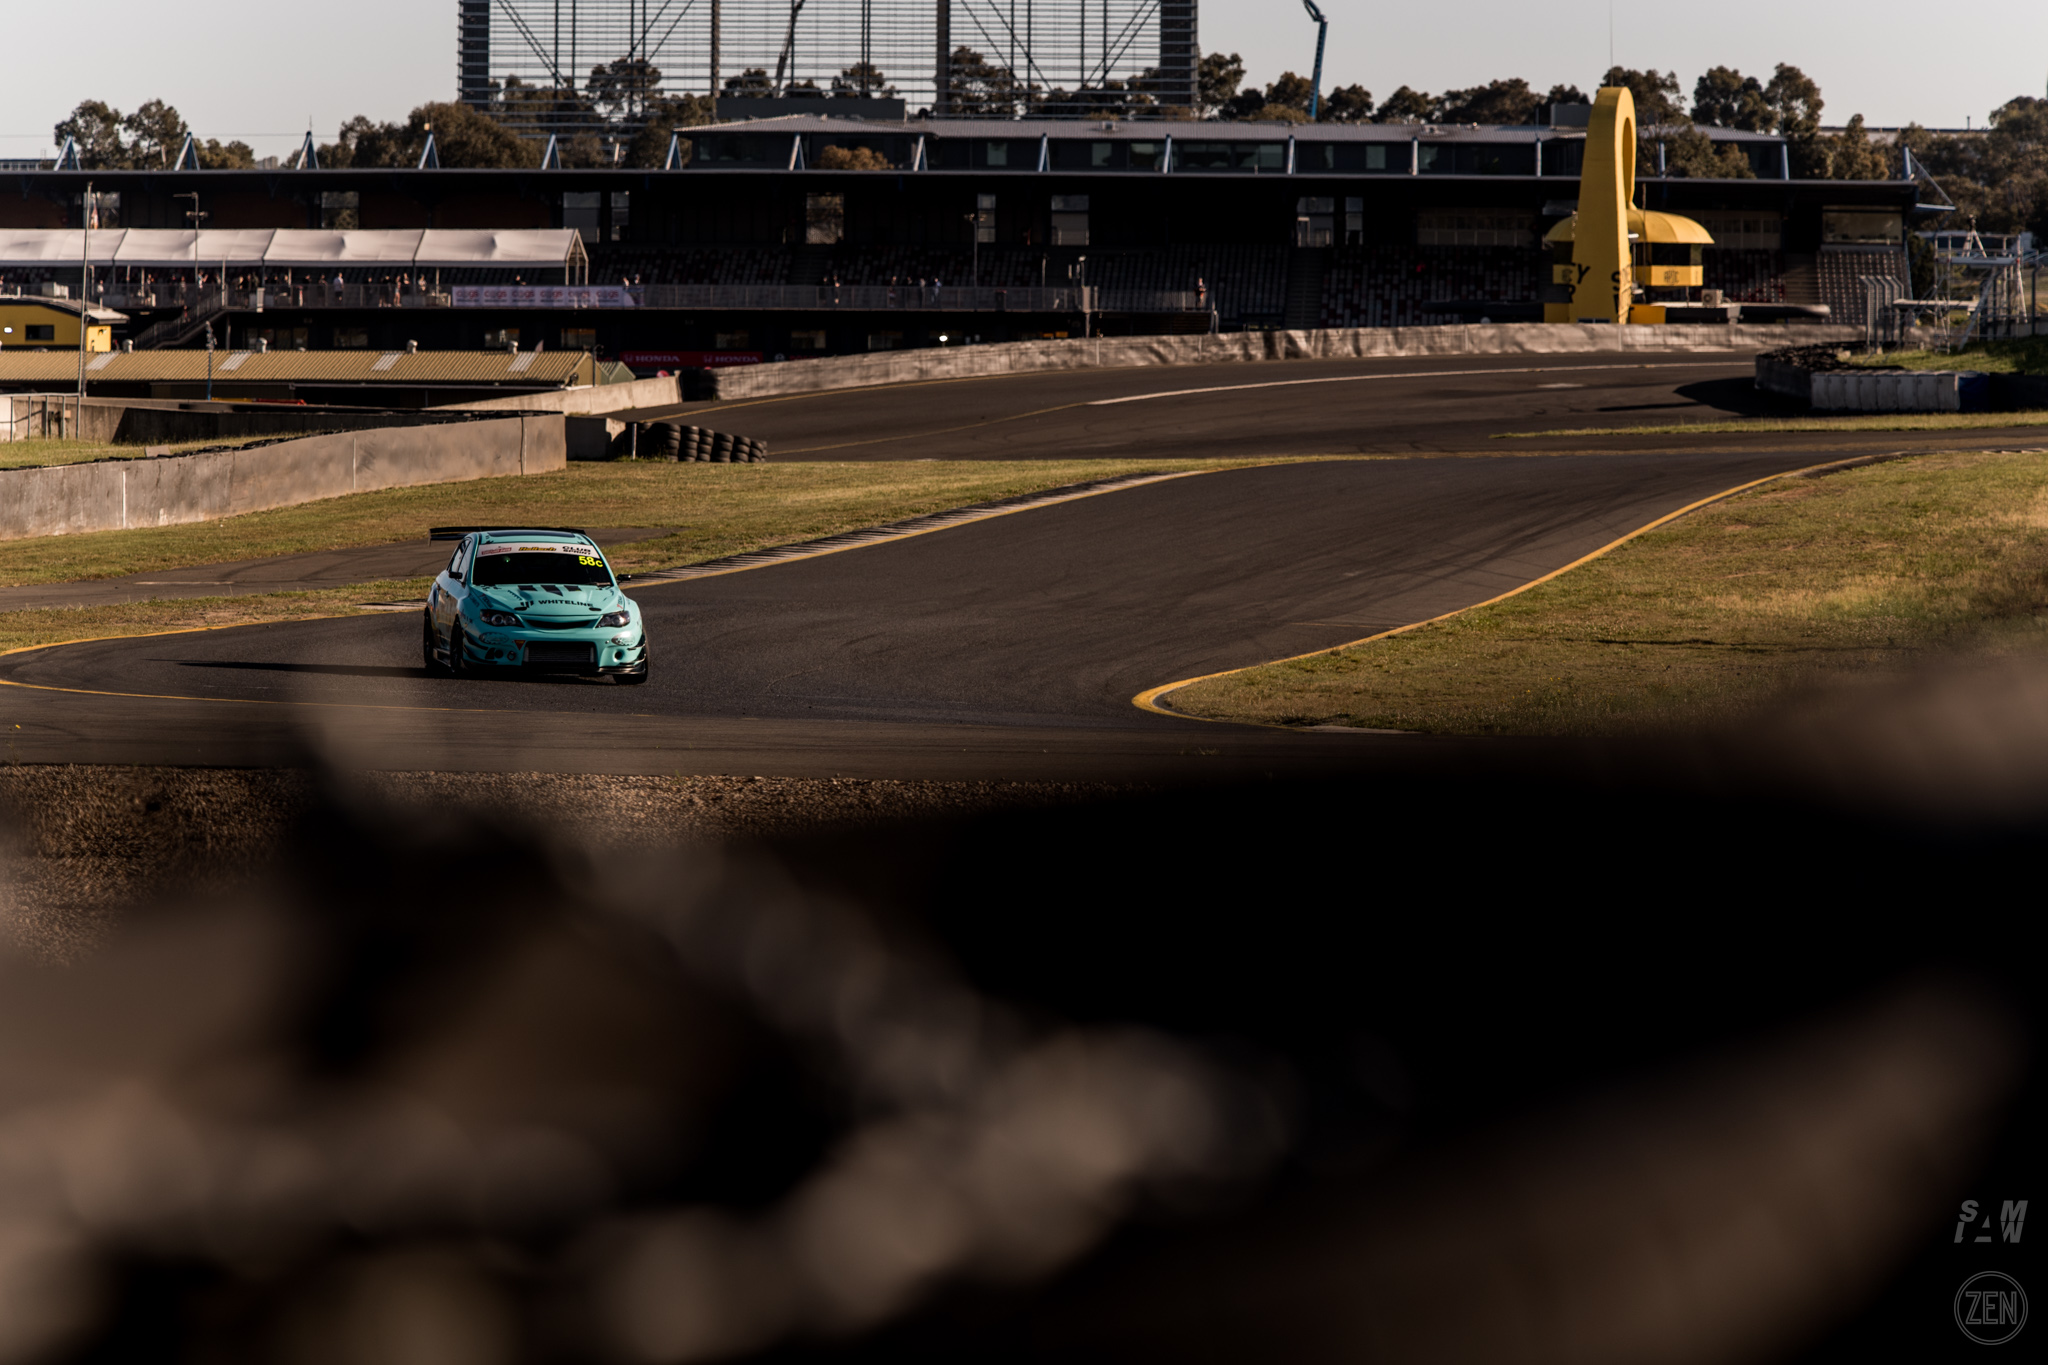 2019-10-19 - WTAC Day 2 078